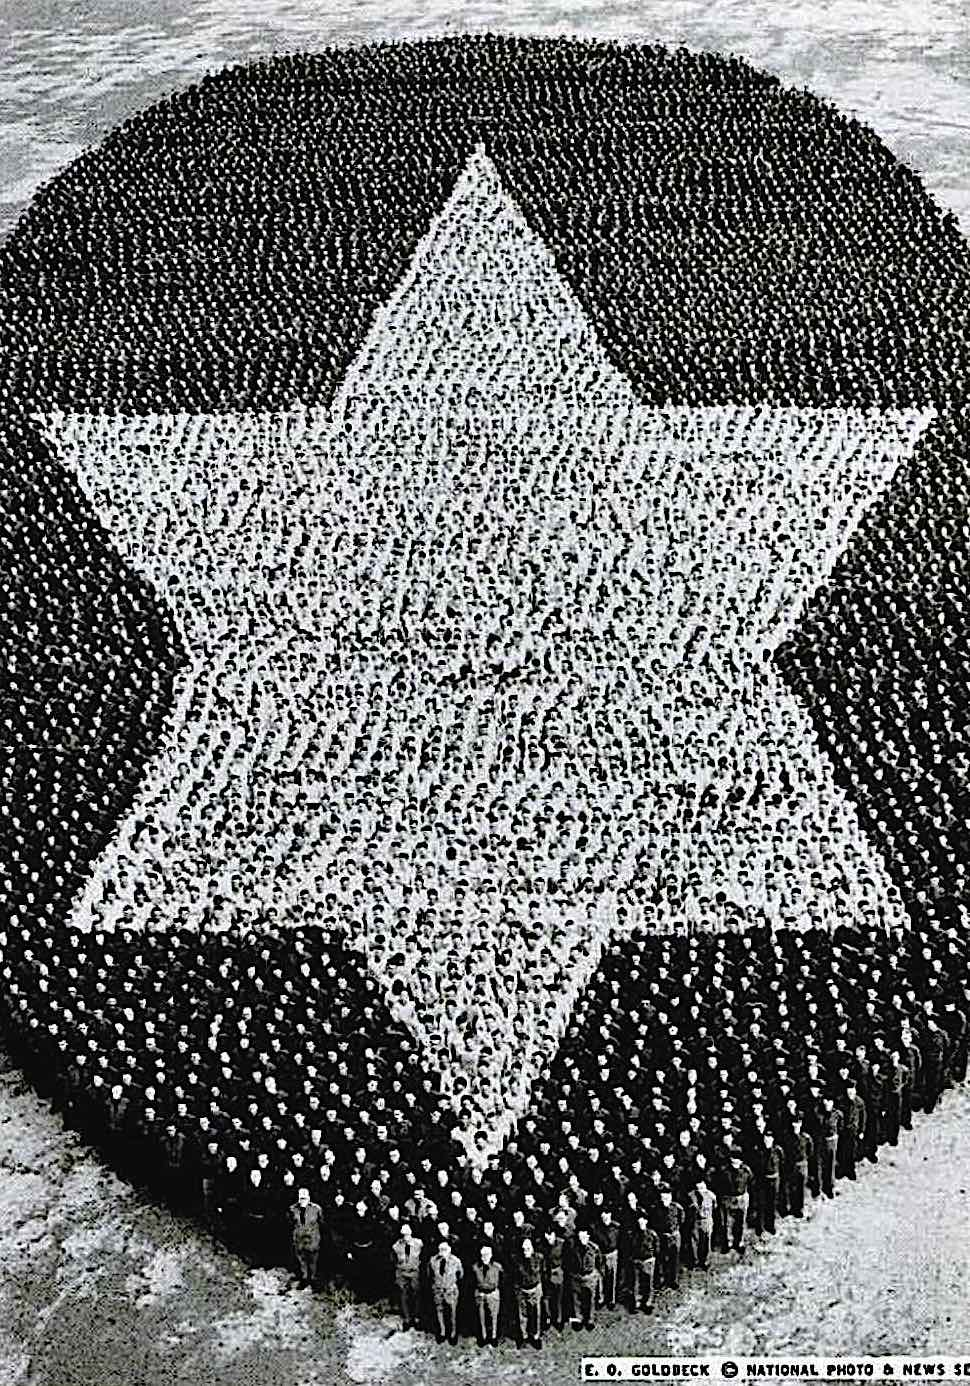 1940 USA troops at attention in a giant star, a group aerial photograph